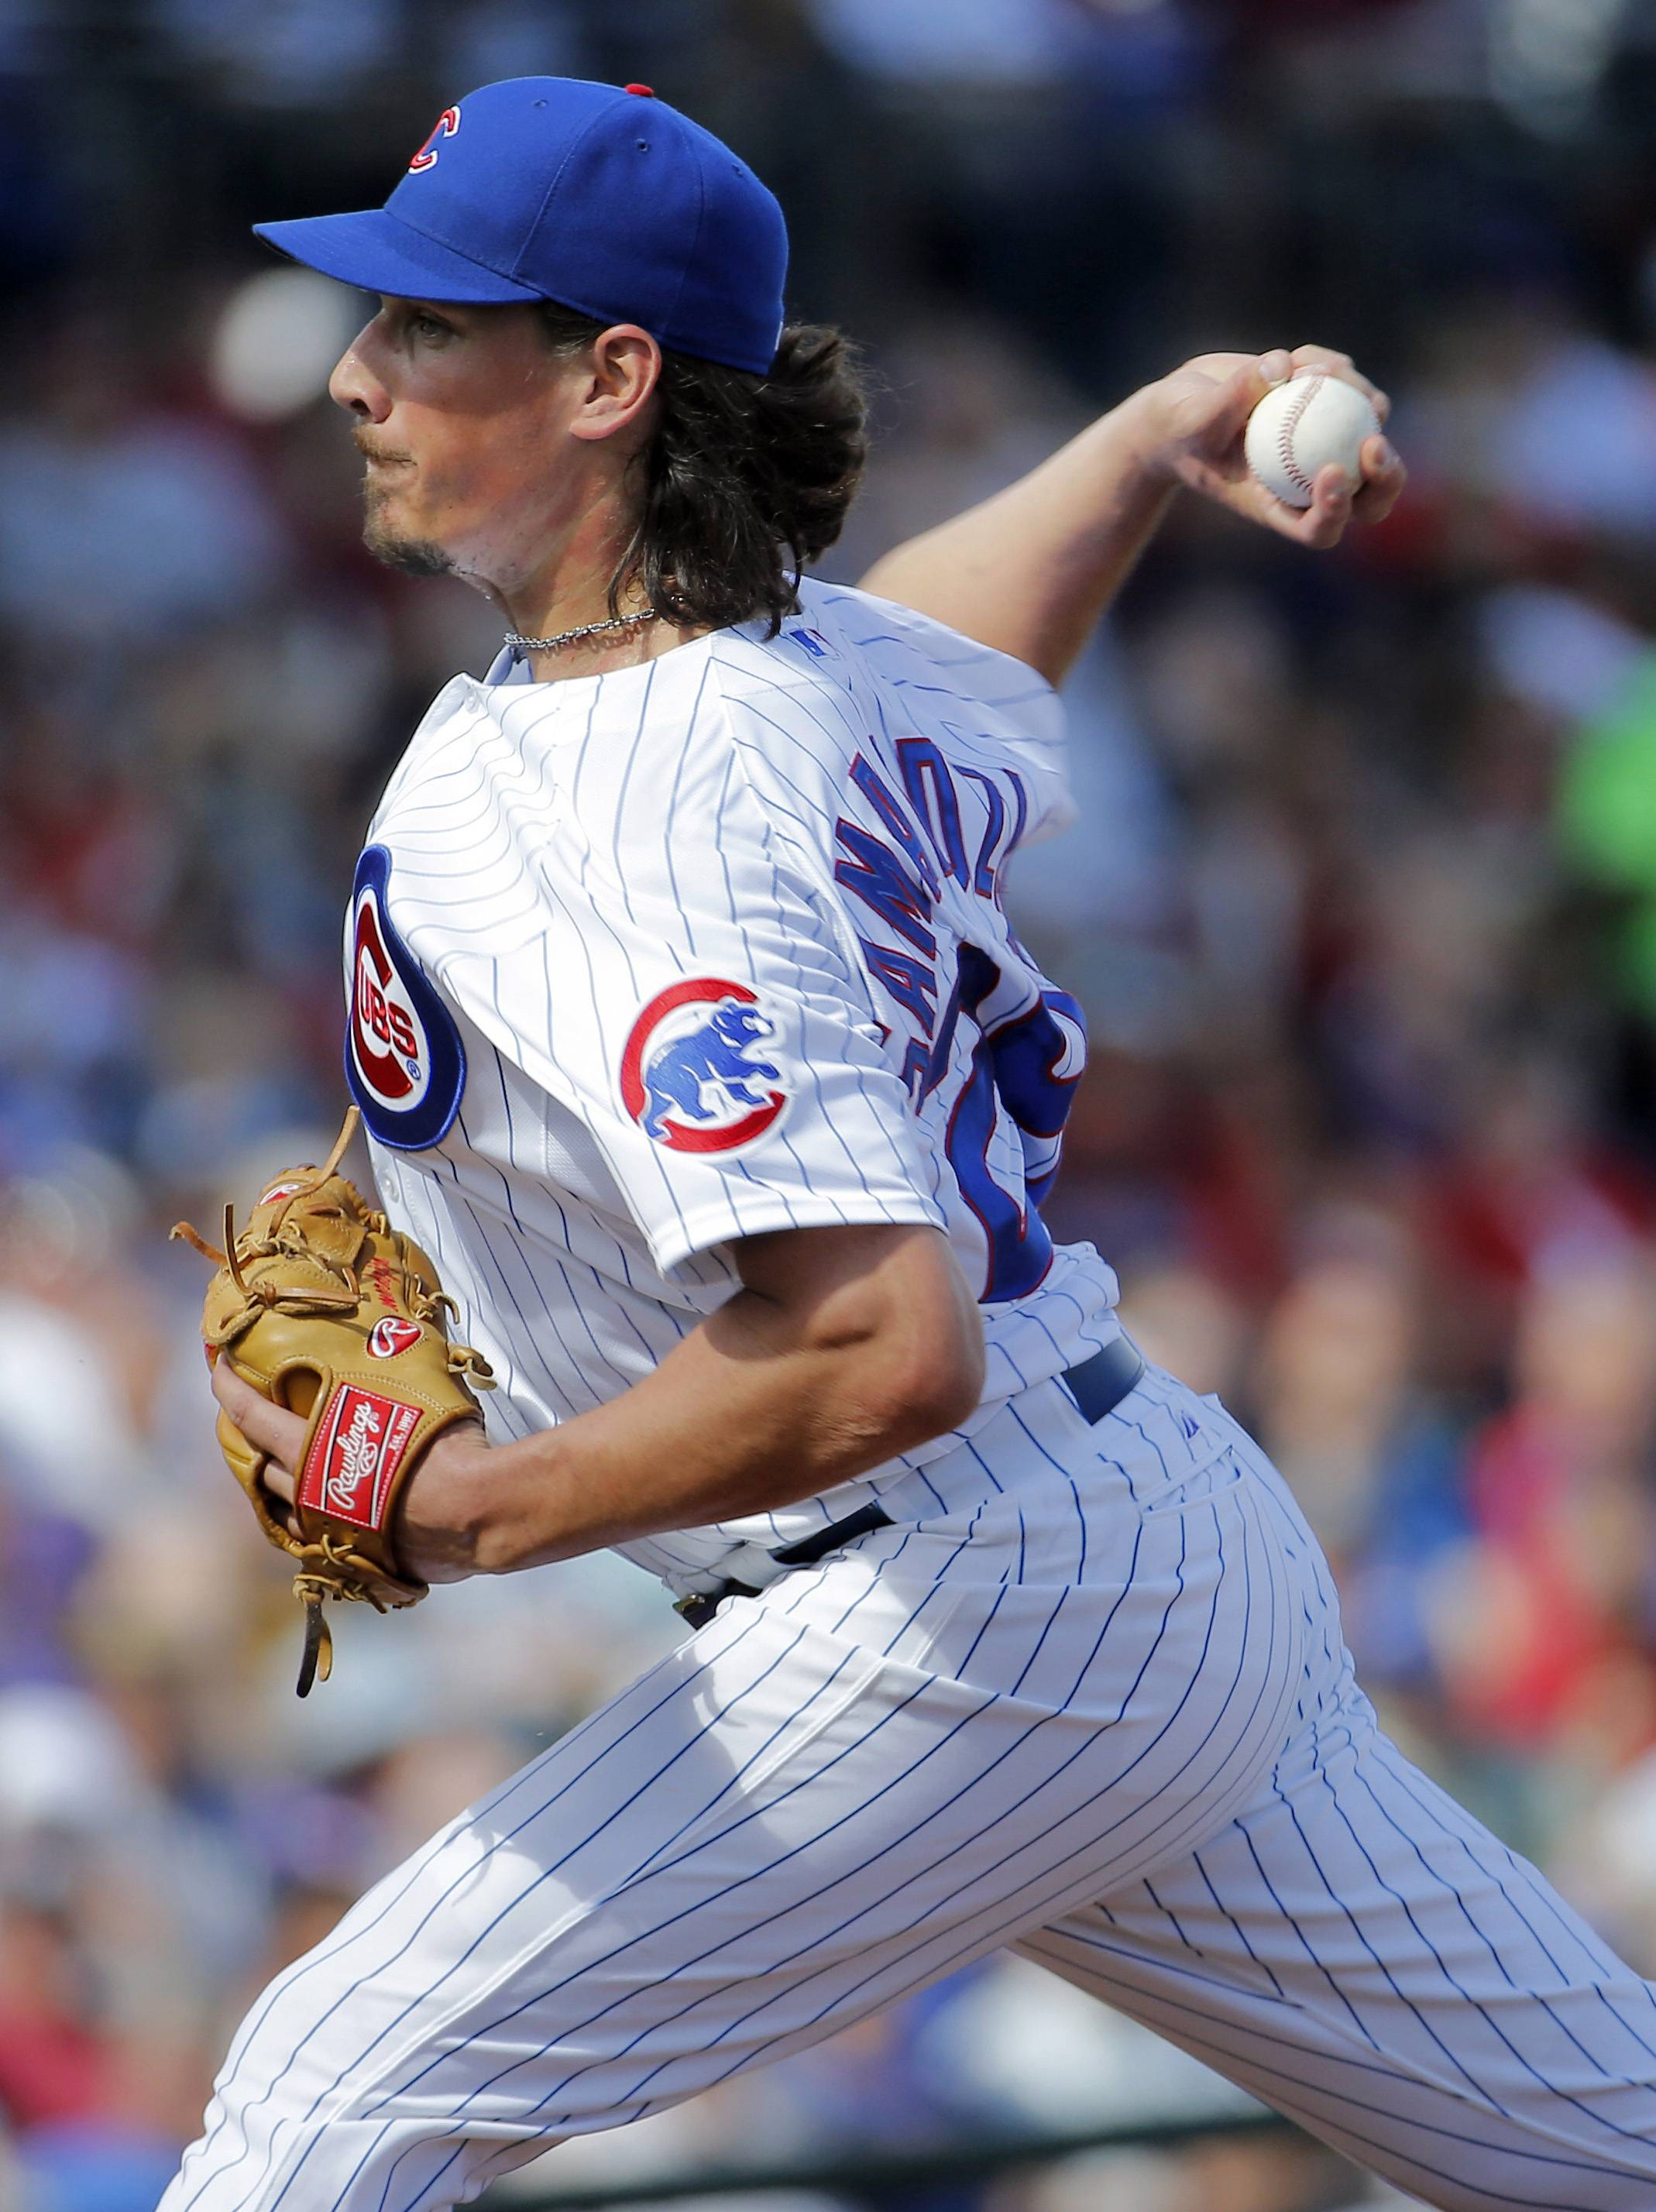 The Cubs' Jeff Samardzija has yet to sign a multiyear contract. He cannot become a free agent until after the 2015 season, but he may be at his peak trade value now.